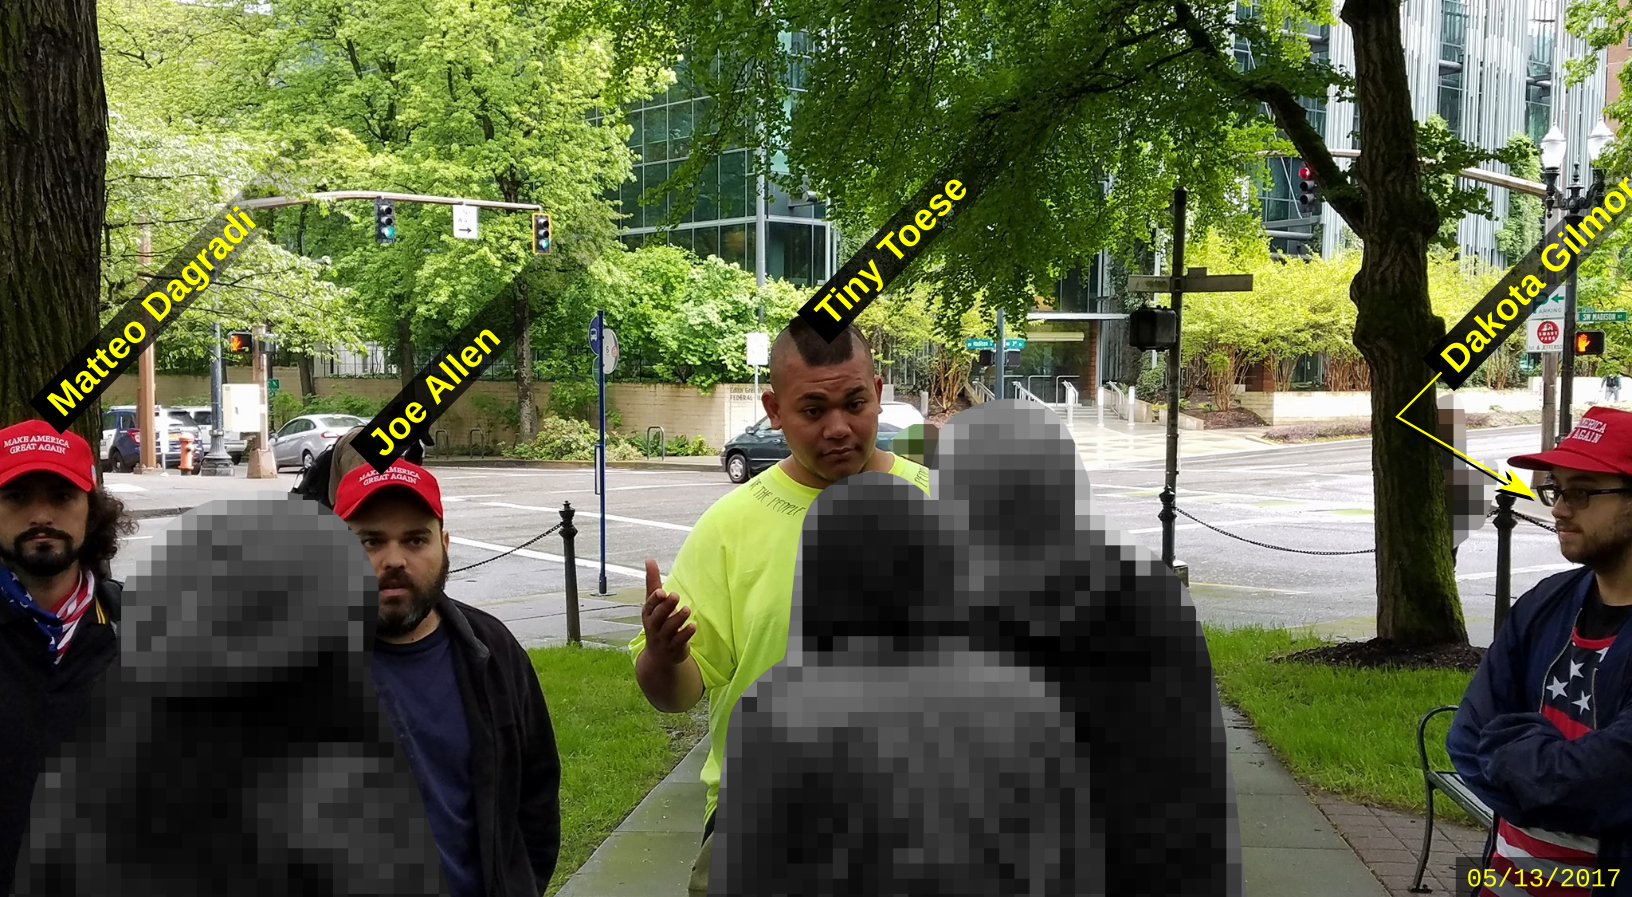 Matteo Dagradi harasses activists in Portland